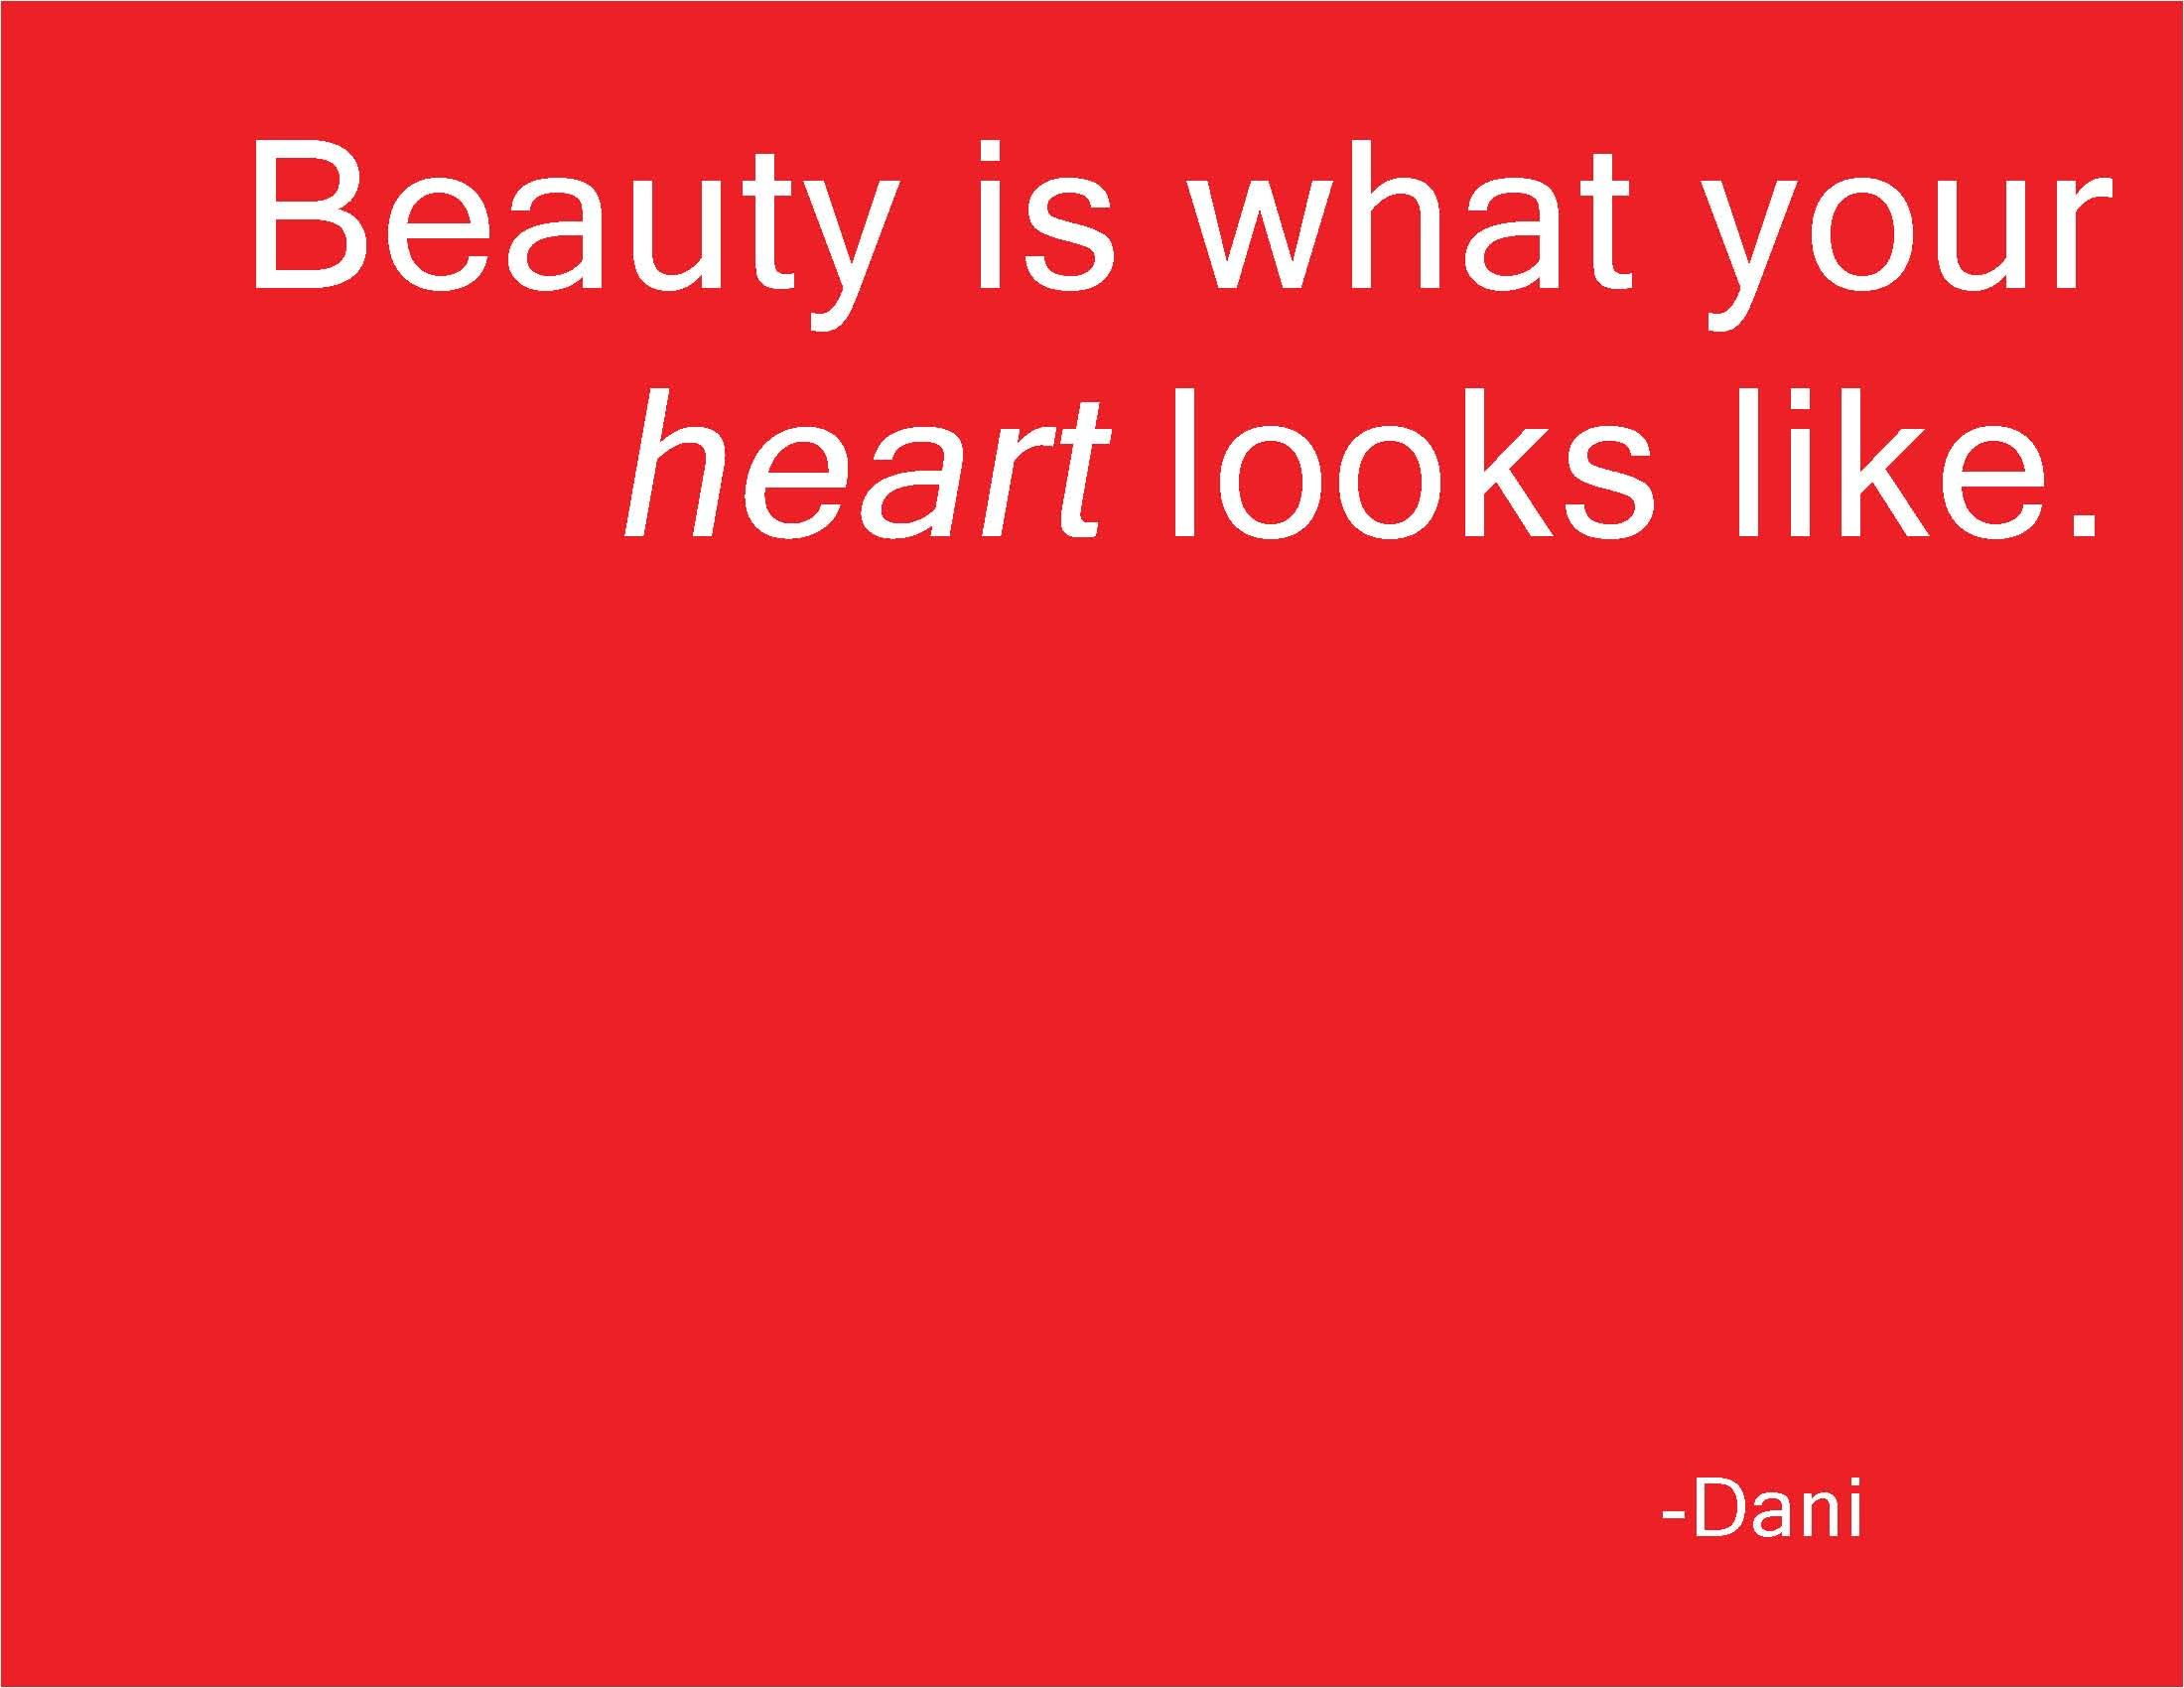 What Makes You Beautiful By Dani Quotes